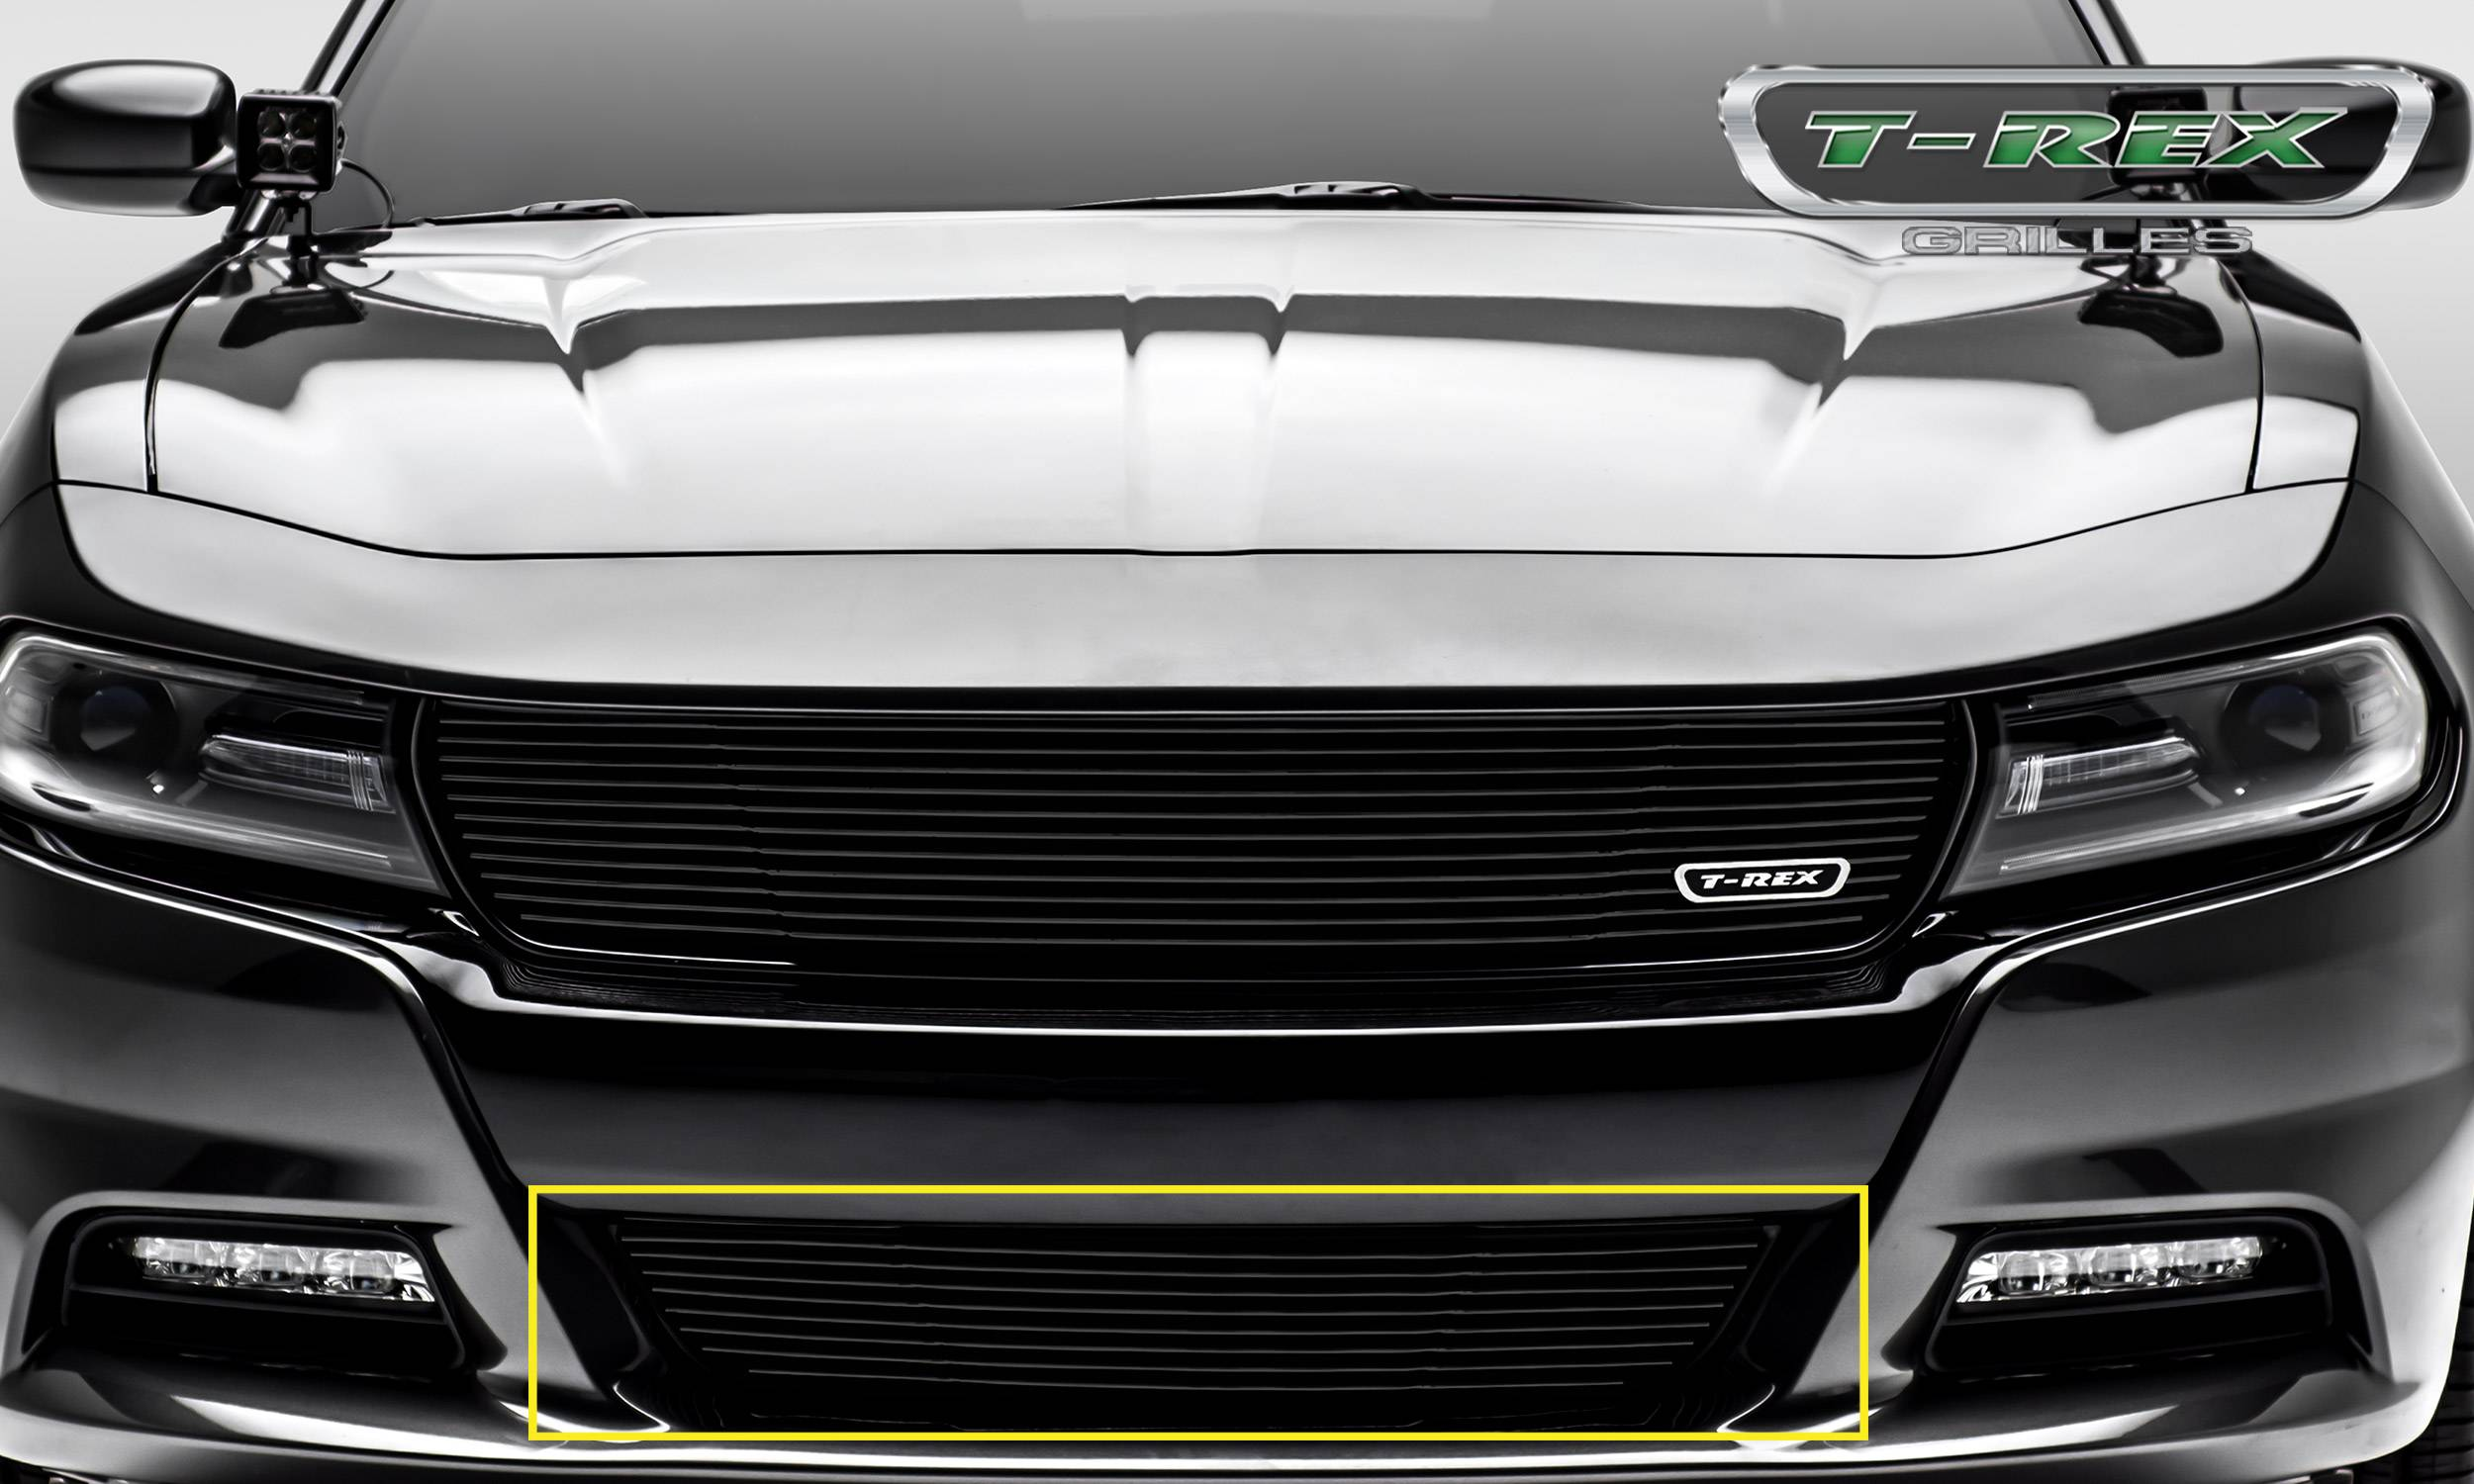 T-REX Dodge Charger - Laser Billet w/ 3-D Conturing - 1 Pc Bumper Grille - Overlay - Black Finish - Pt # 6224761